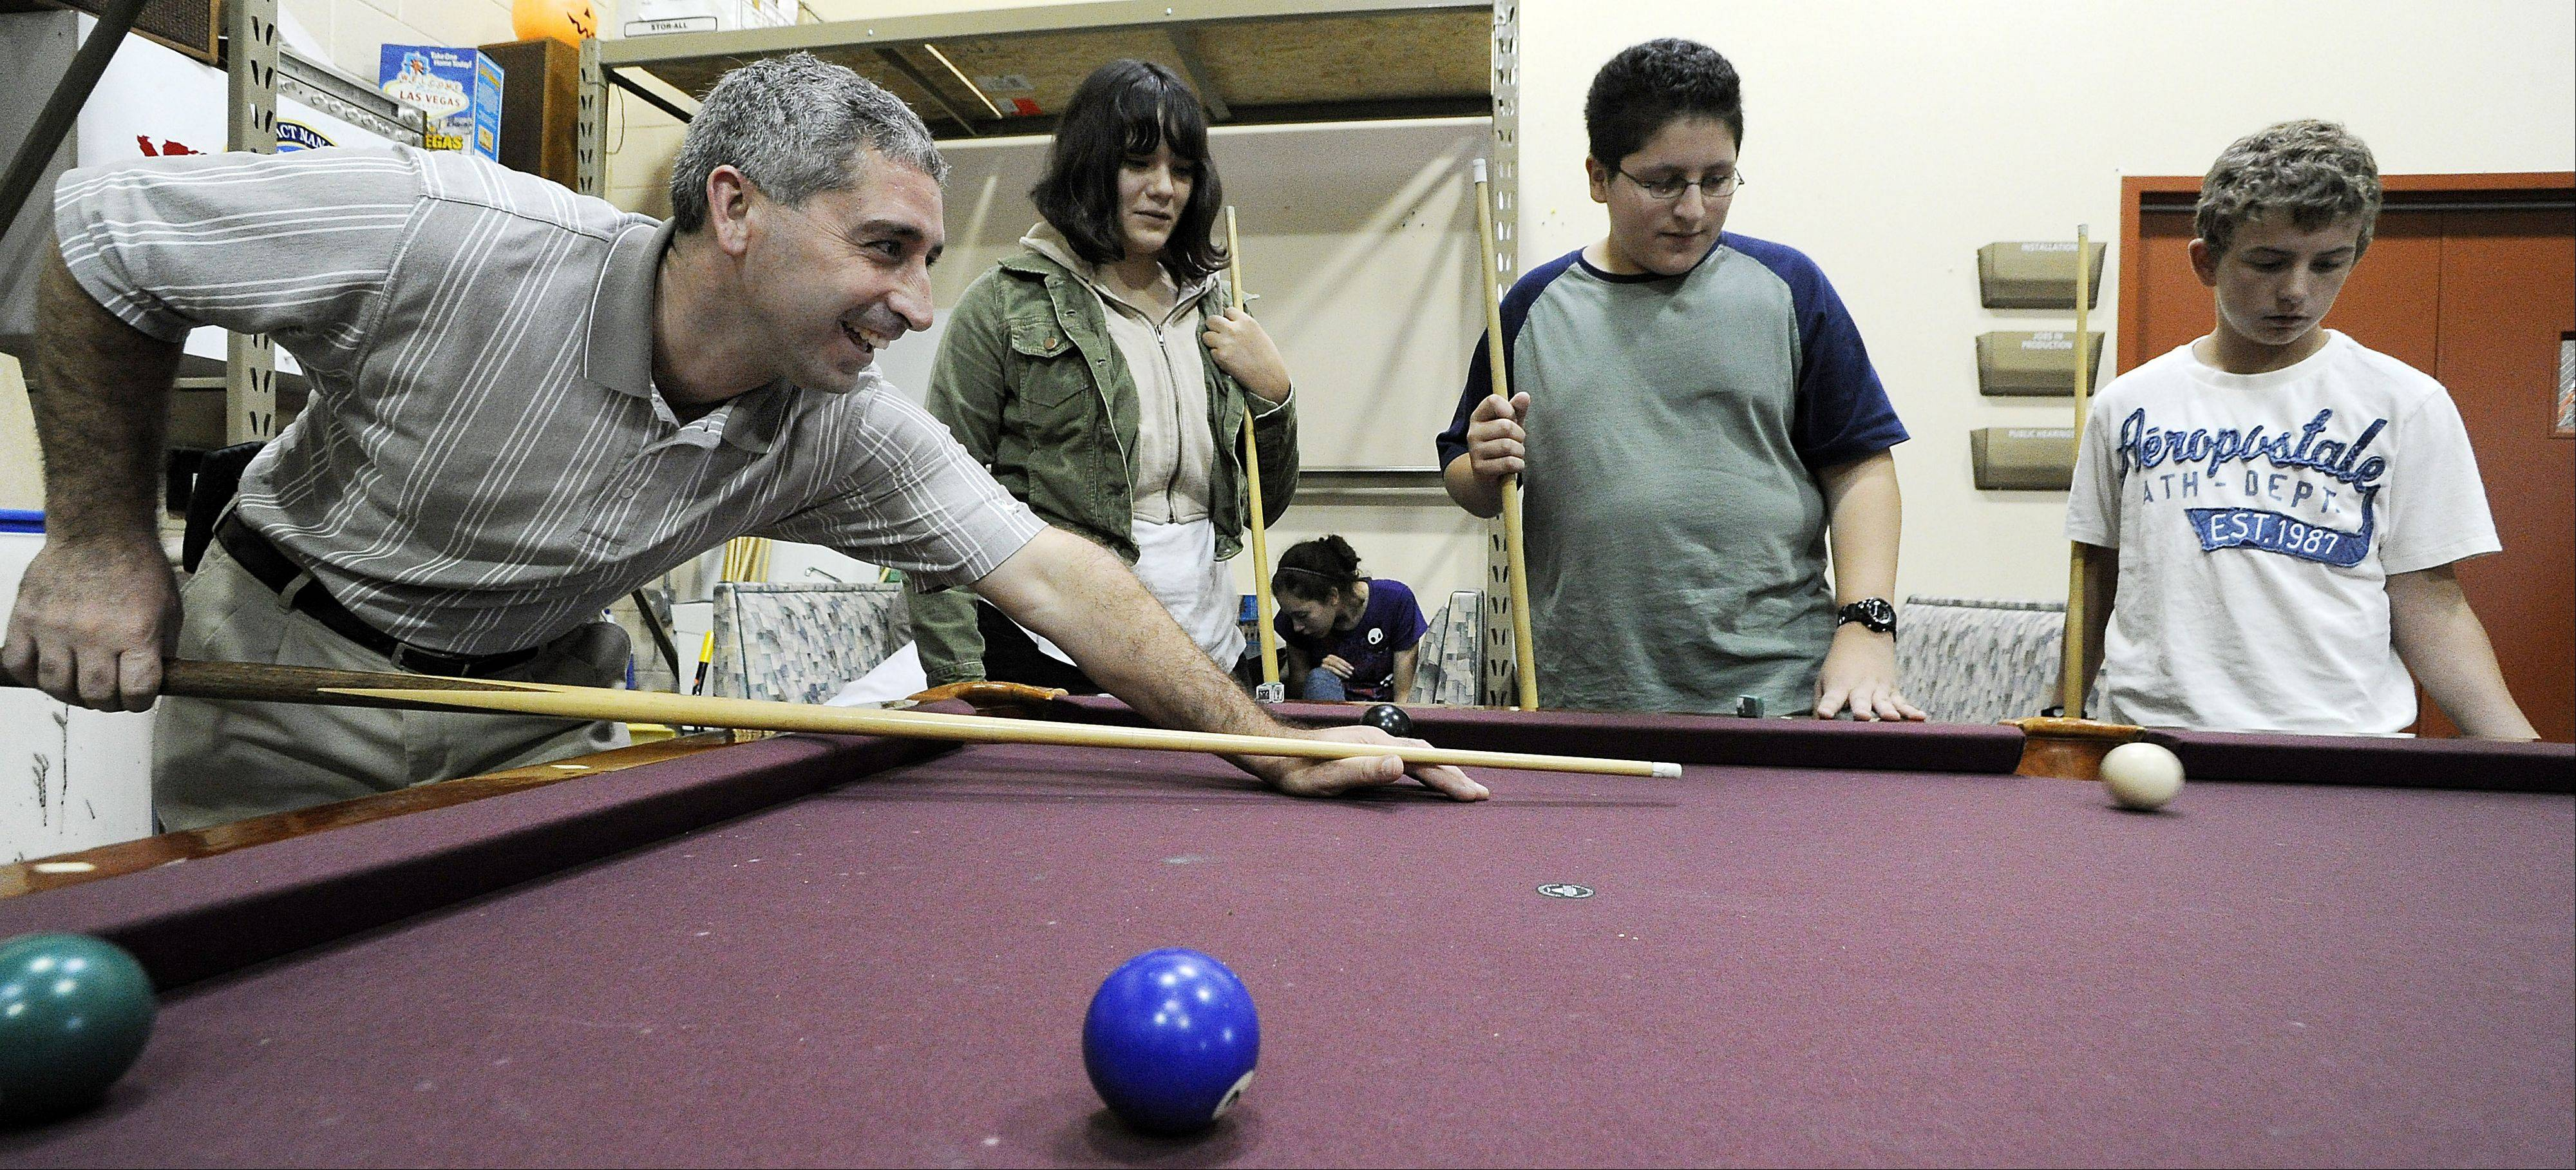 Philip Herman, executive director of the Greater Wheeling Area Youth Organization, shoots pool with students in 2011 when the group's center opened in Arlington Heights. Herman is leaving the organization to pursue full-time work as a youth minister.